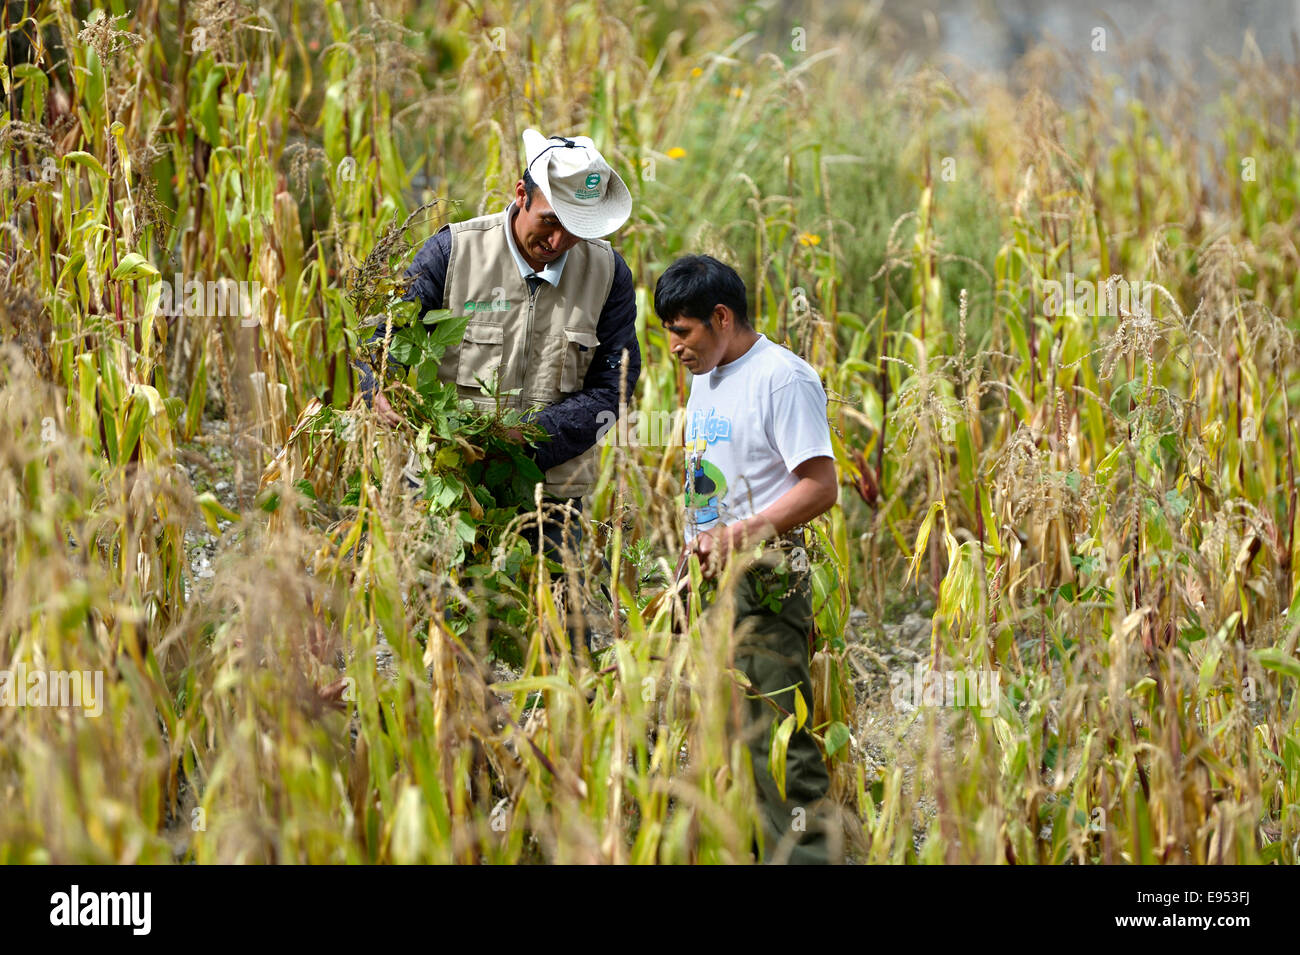 A development aid worker and a traditional farmer in a corn field, Chuquis, Huanuco Province, Peru - Stock Image